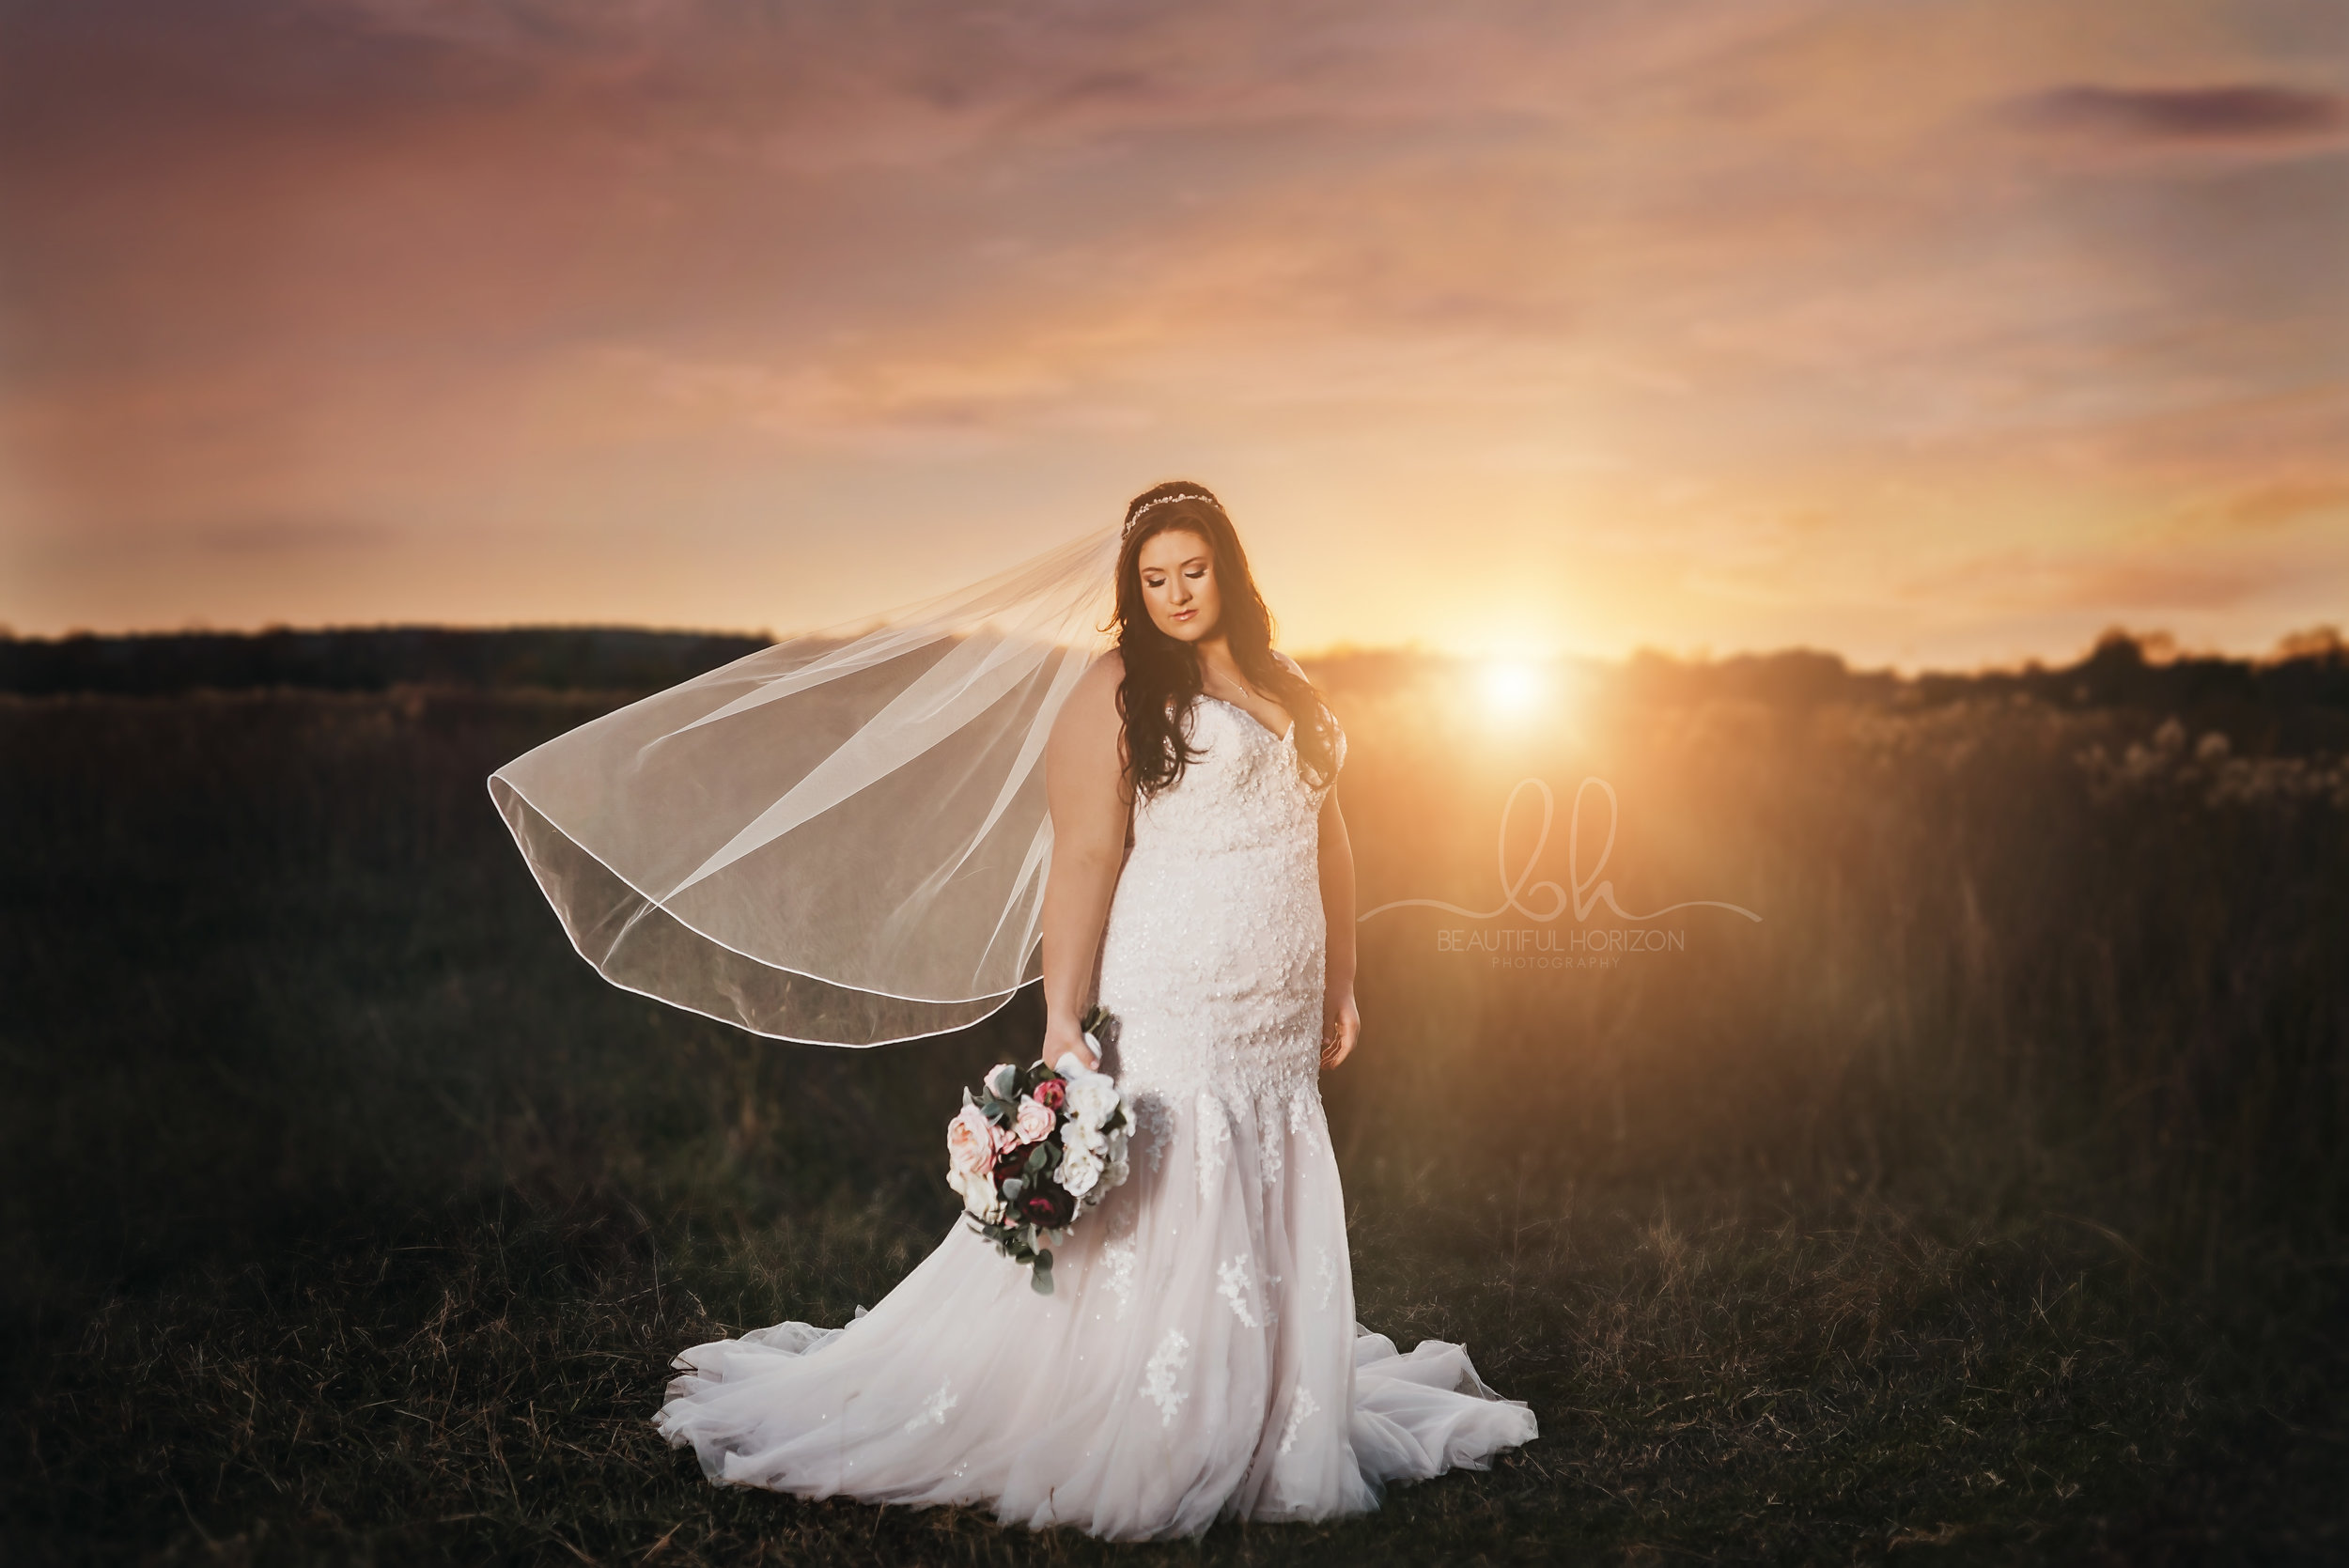 © BEAUTIFUL HORIZON PHOTOGRAPHY. Tuscaloosa, AL Bridal and Wedding Photographer.